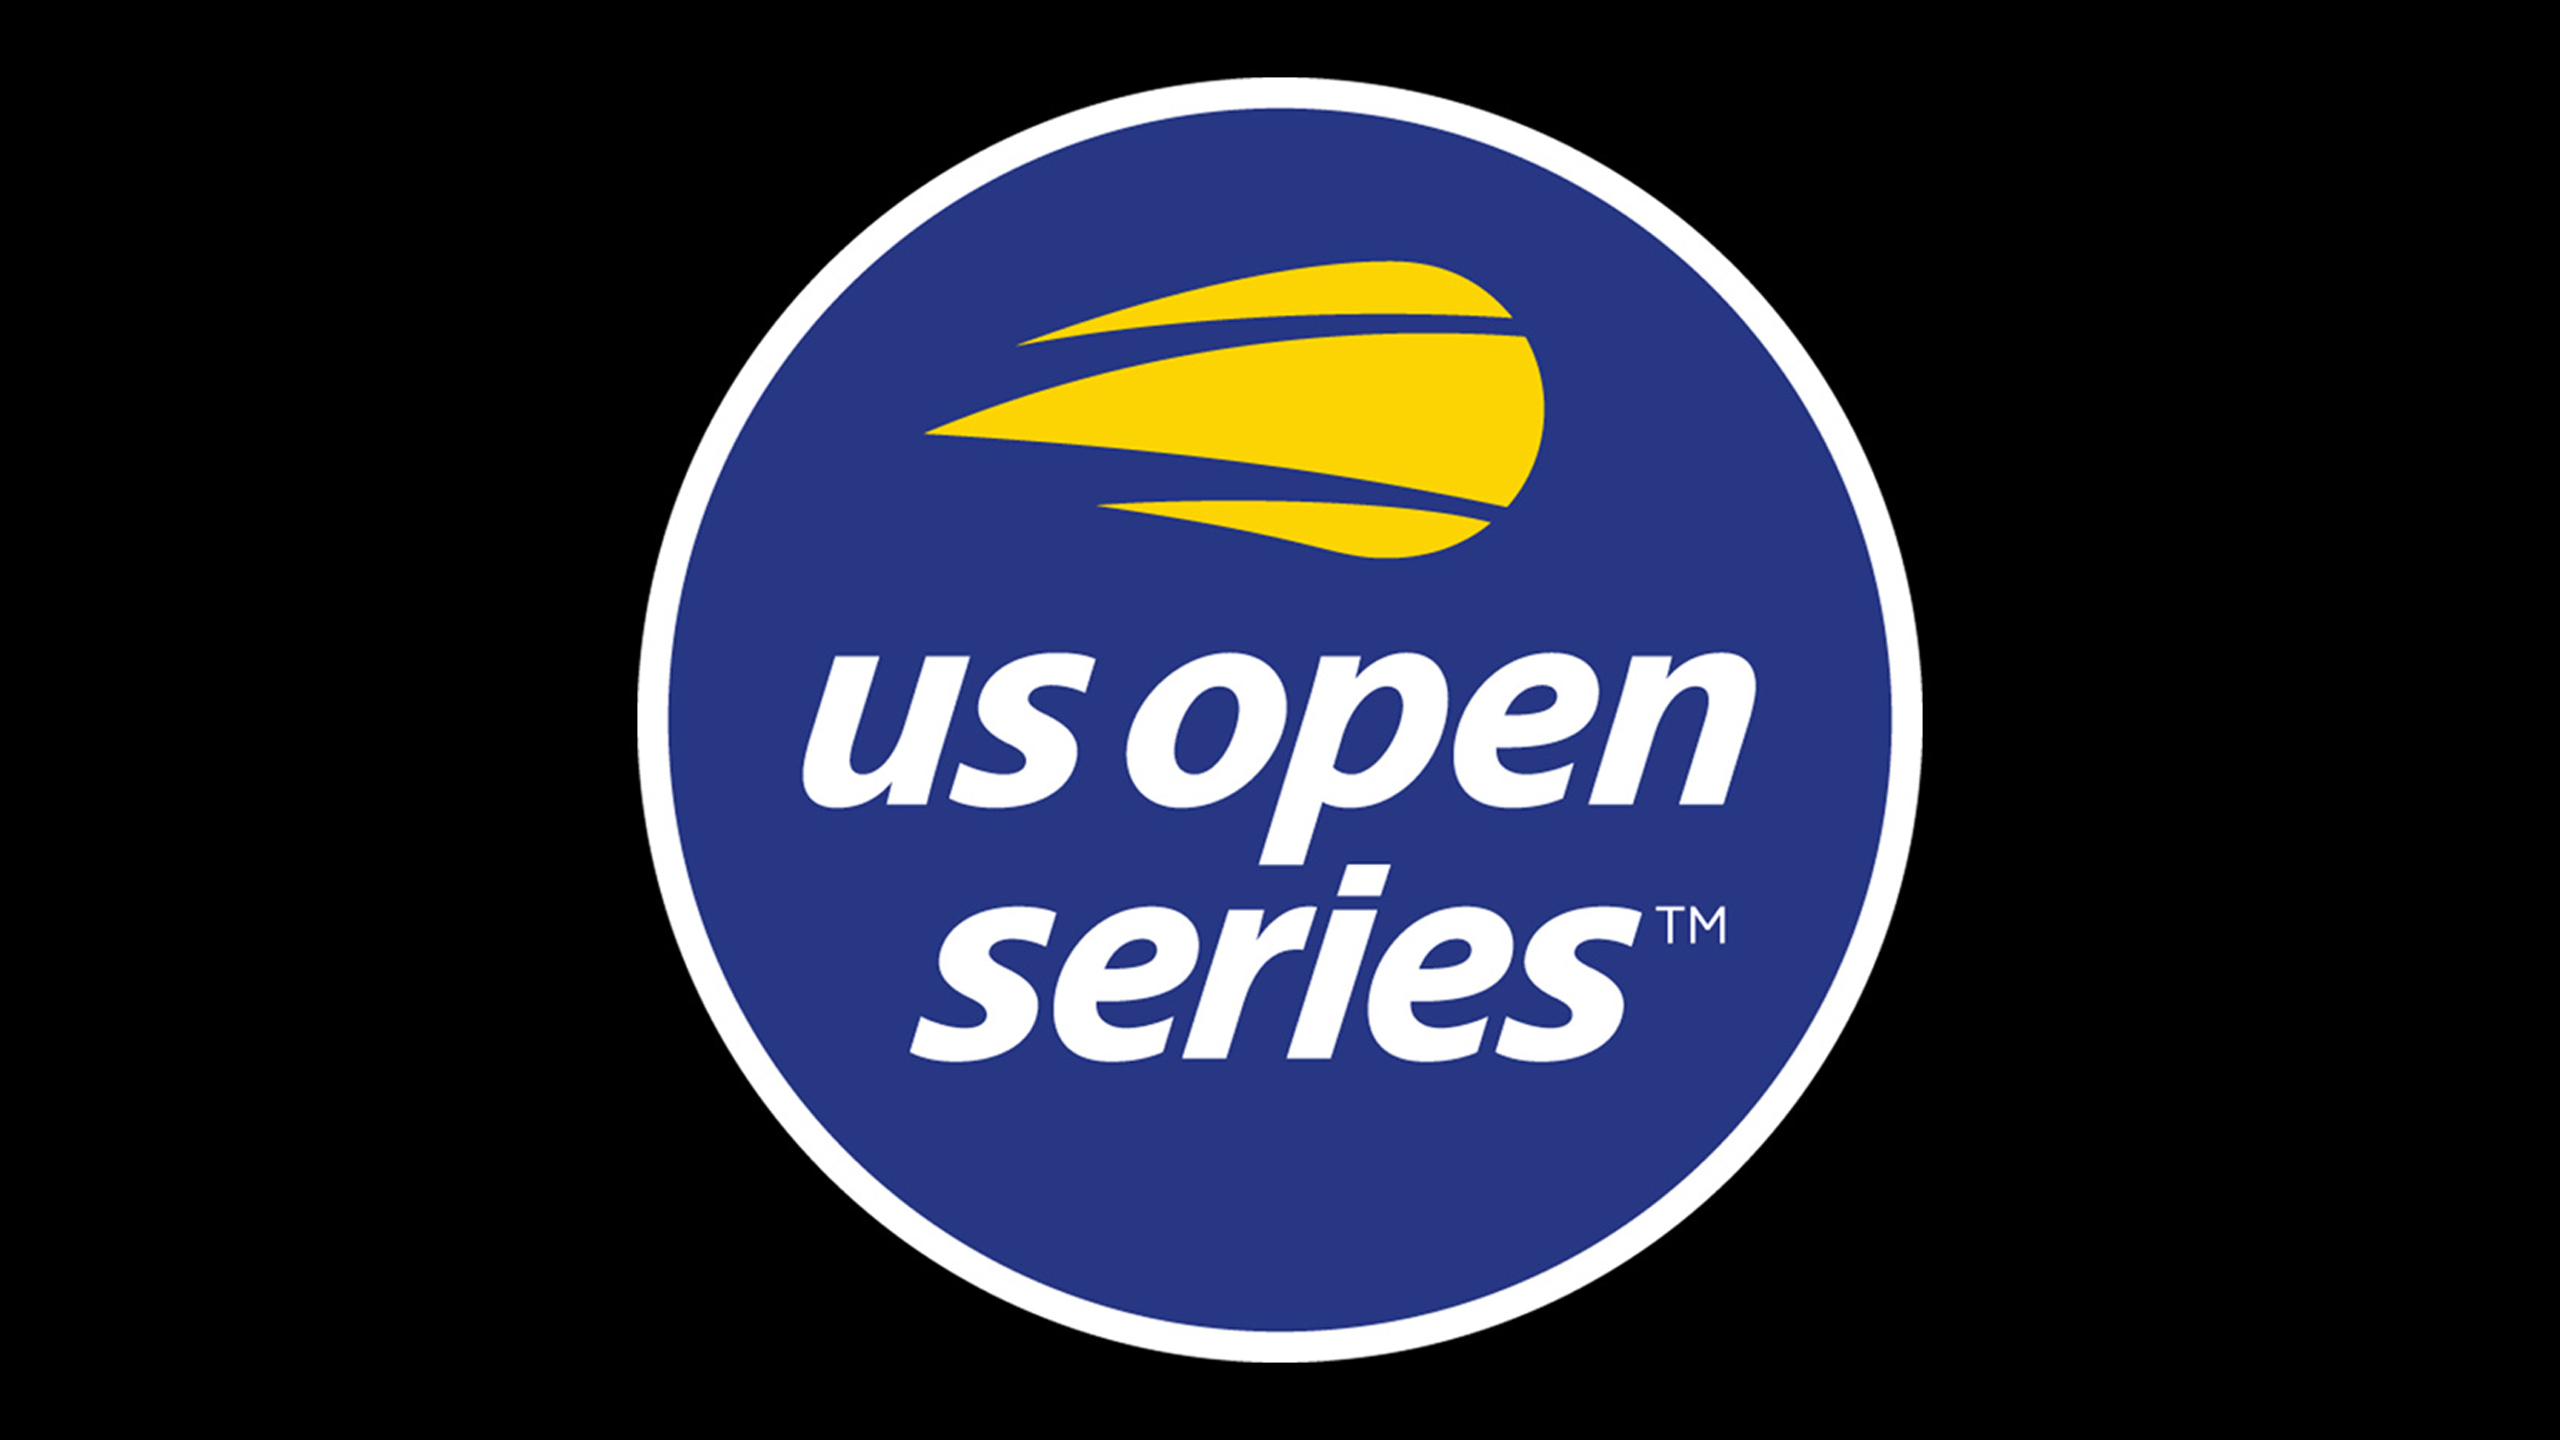 2018 US Open Series - BB&T Atlanta Open (Second Round)